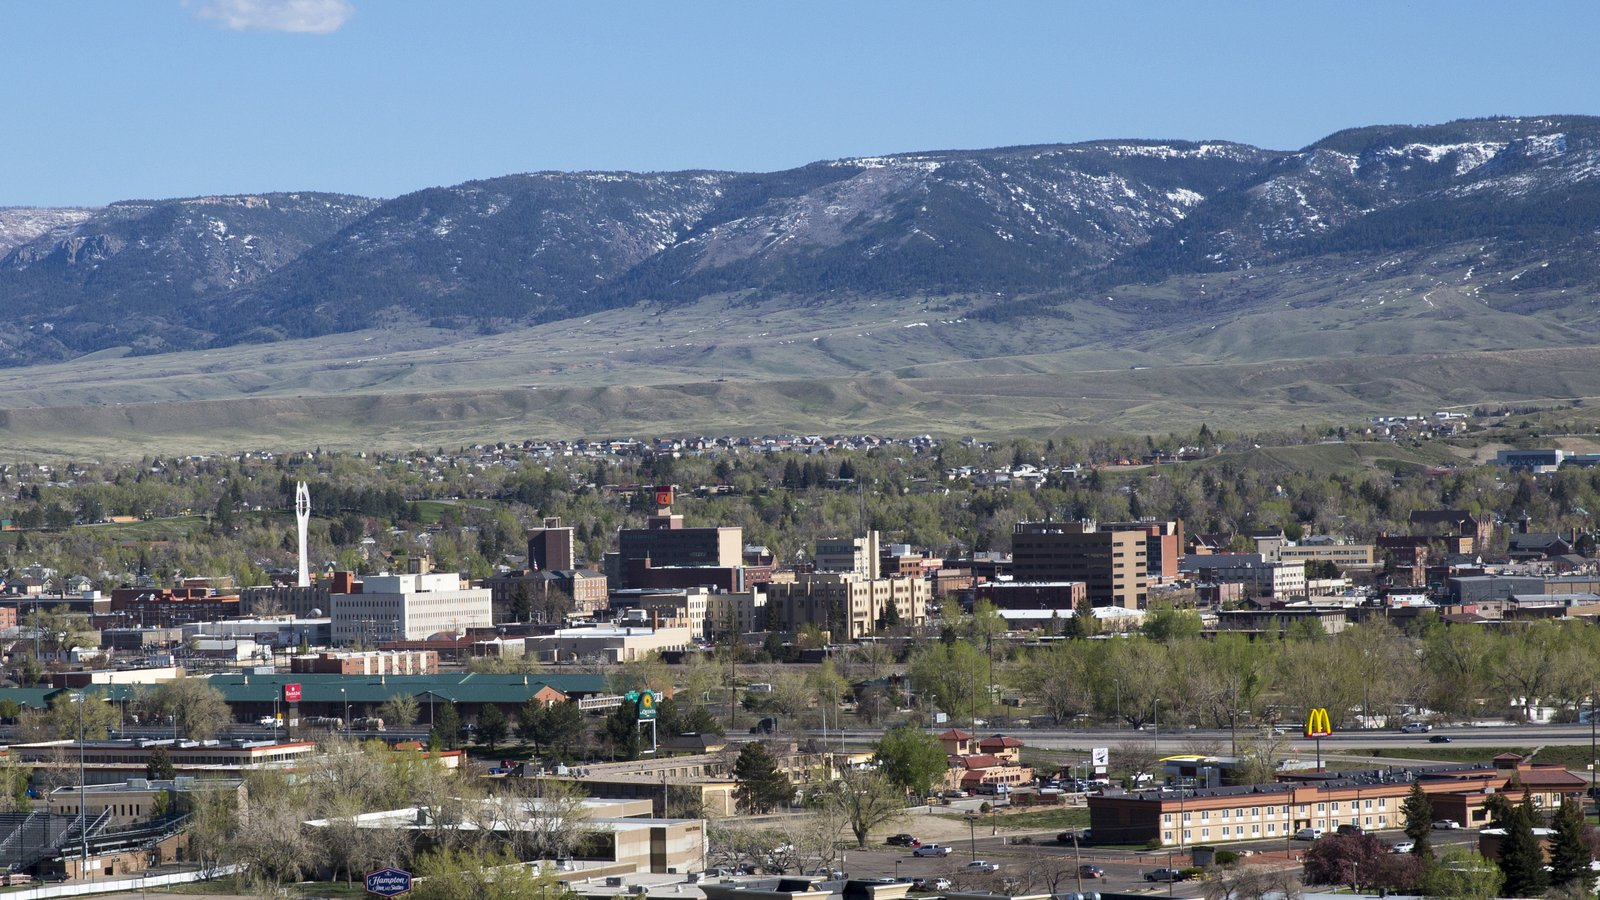 aerial view of the city of Casper